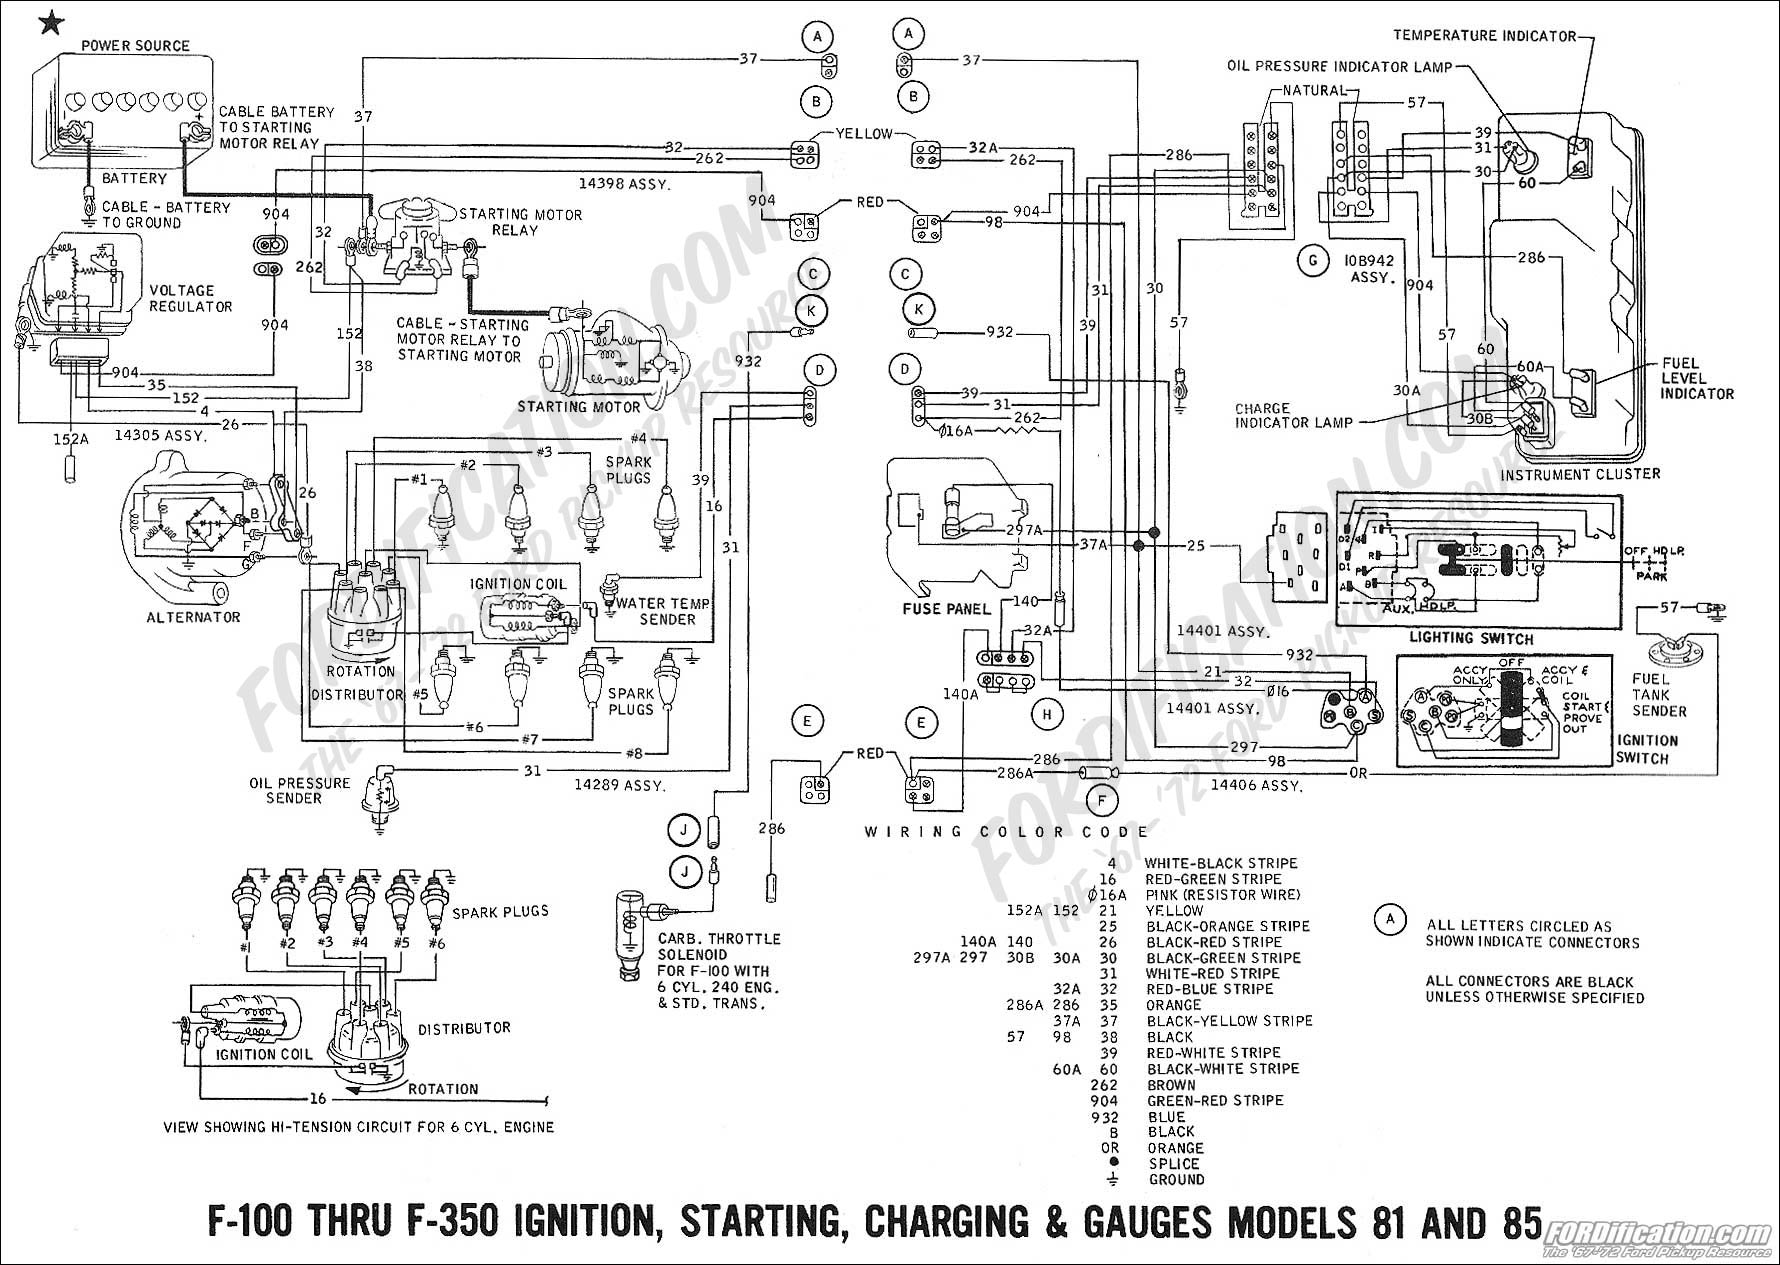 2014 Ford Mustang Abs Wiring Harness Diagram - daily update ...  Ford Festiva Ignition Wiring Diagram on ford pinto ignition wiring diagram, ford falcon ignition wiring diagram, ford fairmont ignition wiring diagram, ford festiva carburetor diagram, ford 8n ignition wiring diagram, 1997 ford wiring diagram, ford festiva radio wiring, ford f-150 ignition wiring diagram, ford festiva engine diagram, ford festiva wiring harness diagram, 1937 ford ignition wiring diagram, ford mustang ignition wiring diagram, ford f250 ignition wiring diagram, ford festiva transmission diagram, ford e250 ignition wiring diagram, ford expedition ignition wiring diagram,